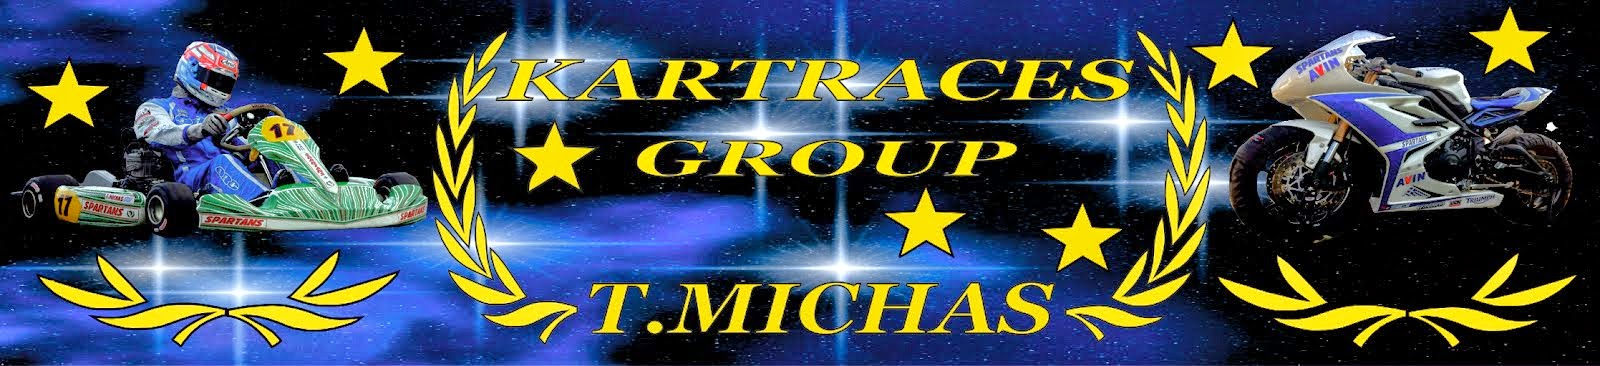 KARTRACES GROUP  T.MICHAS